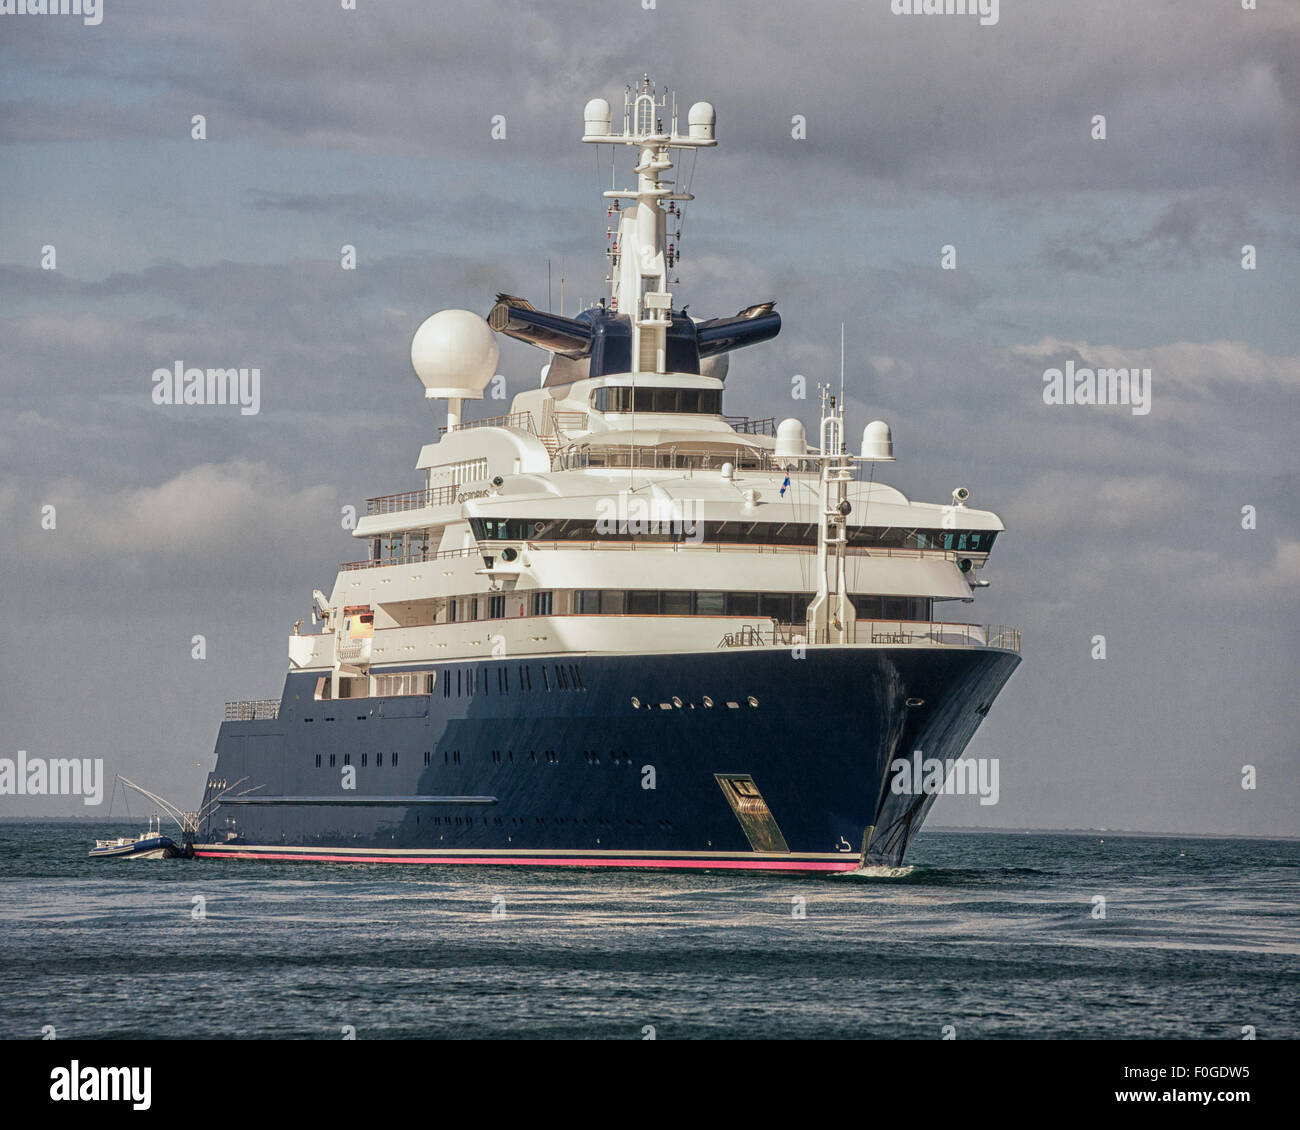 Heimaey Iceland 3rd Aug 2015 The Octopus The 414 Ft 126 M